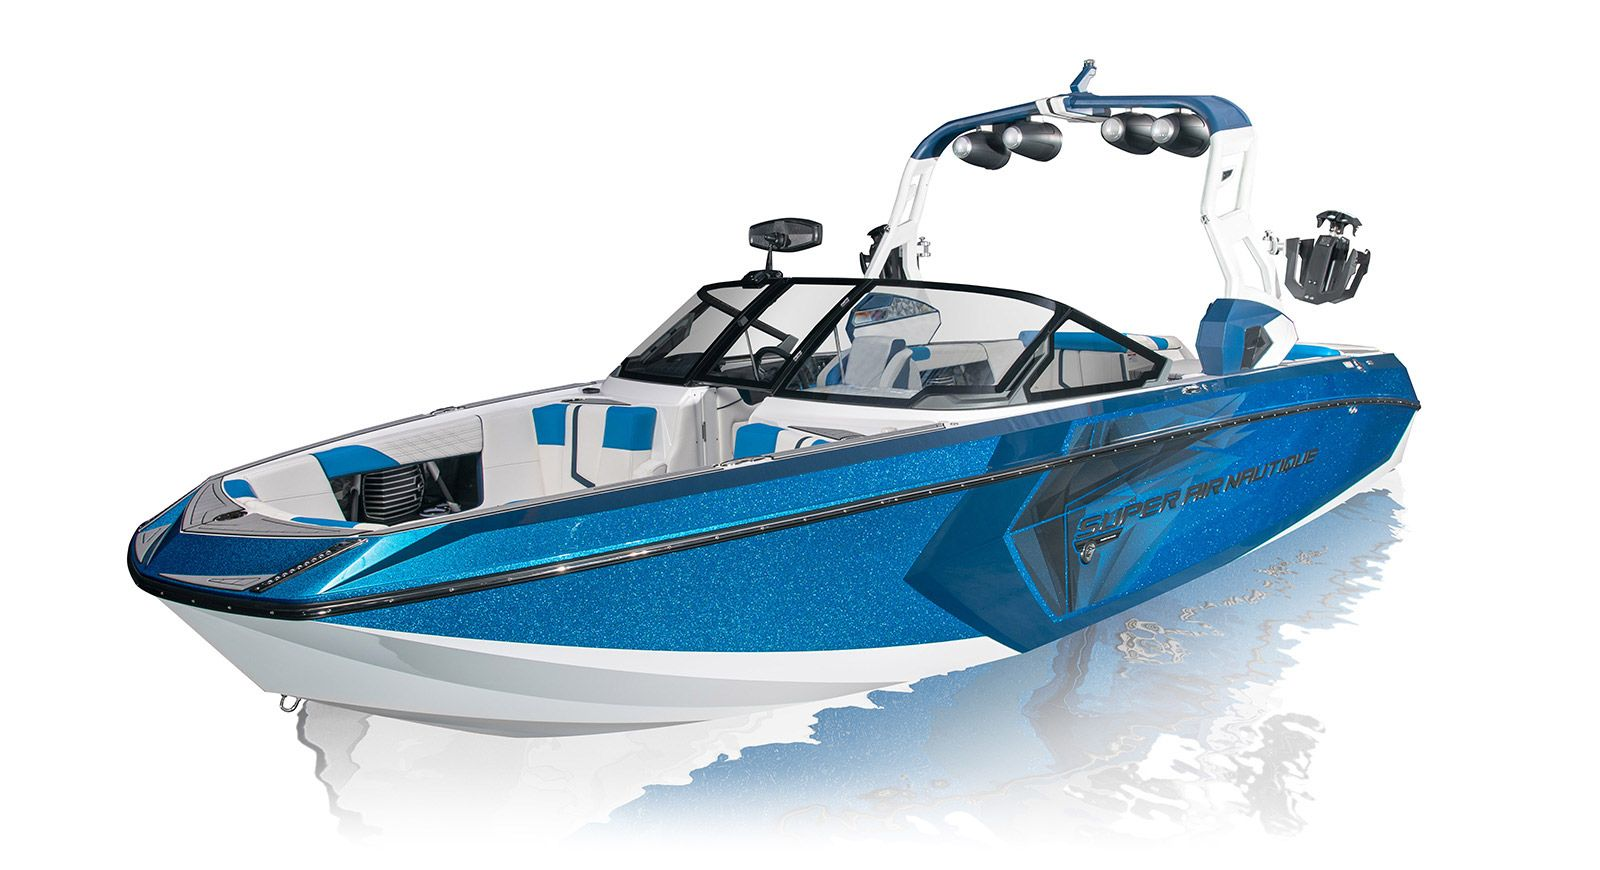 Super Air Nautique G25 3/4 left view Air, Super, Boat